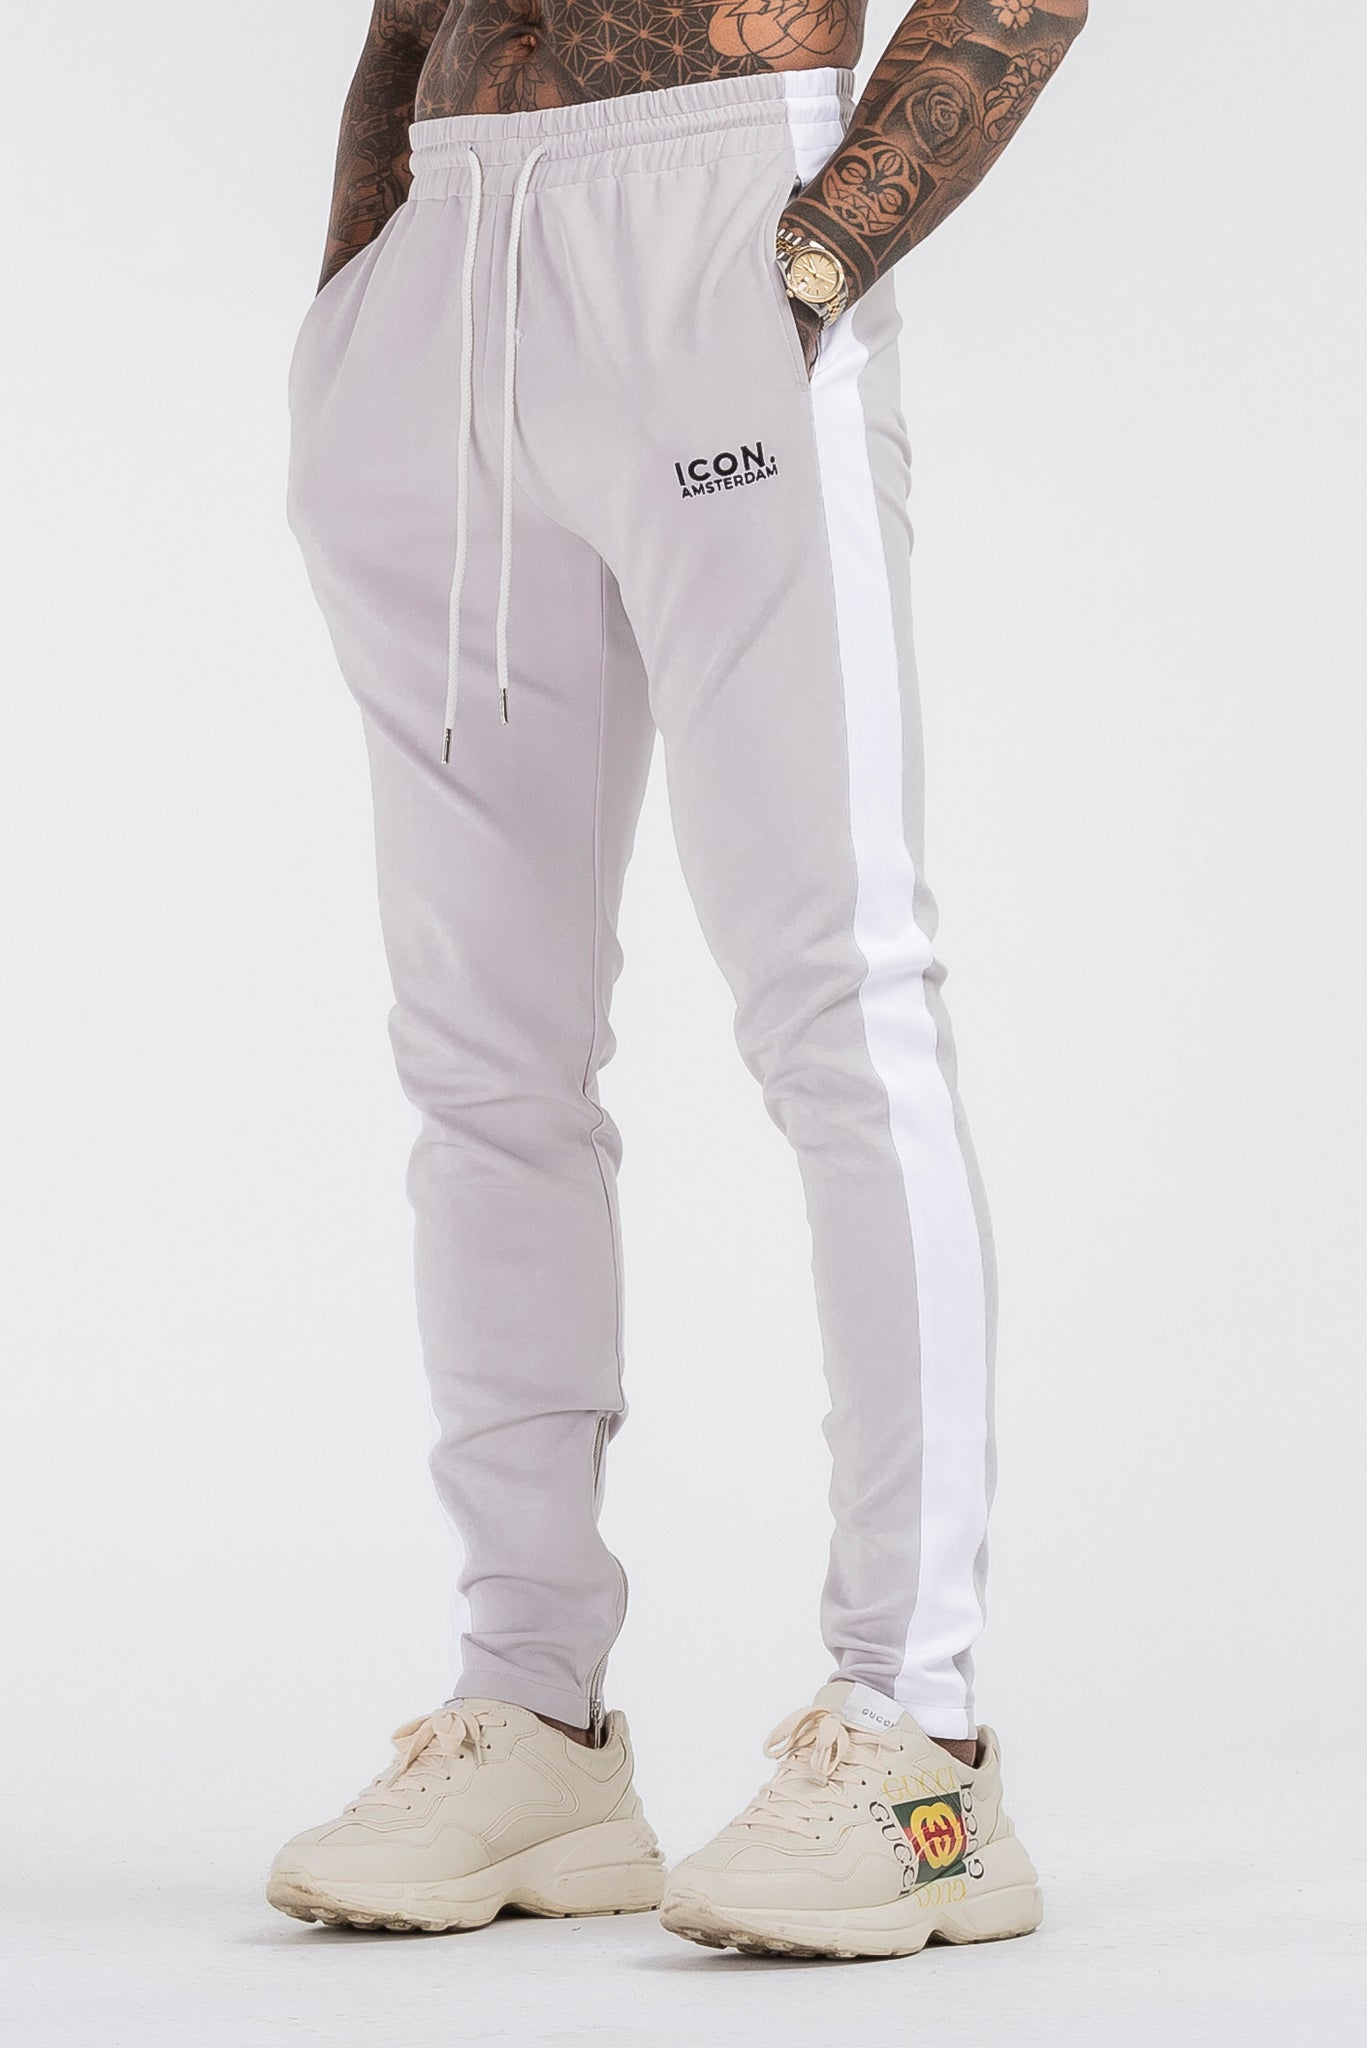 THE ICONIC TRACK PANTS - LIGHT GREY - ICON. AMSTERDAM